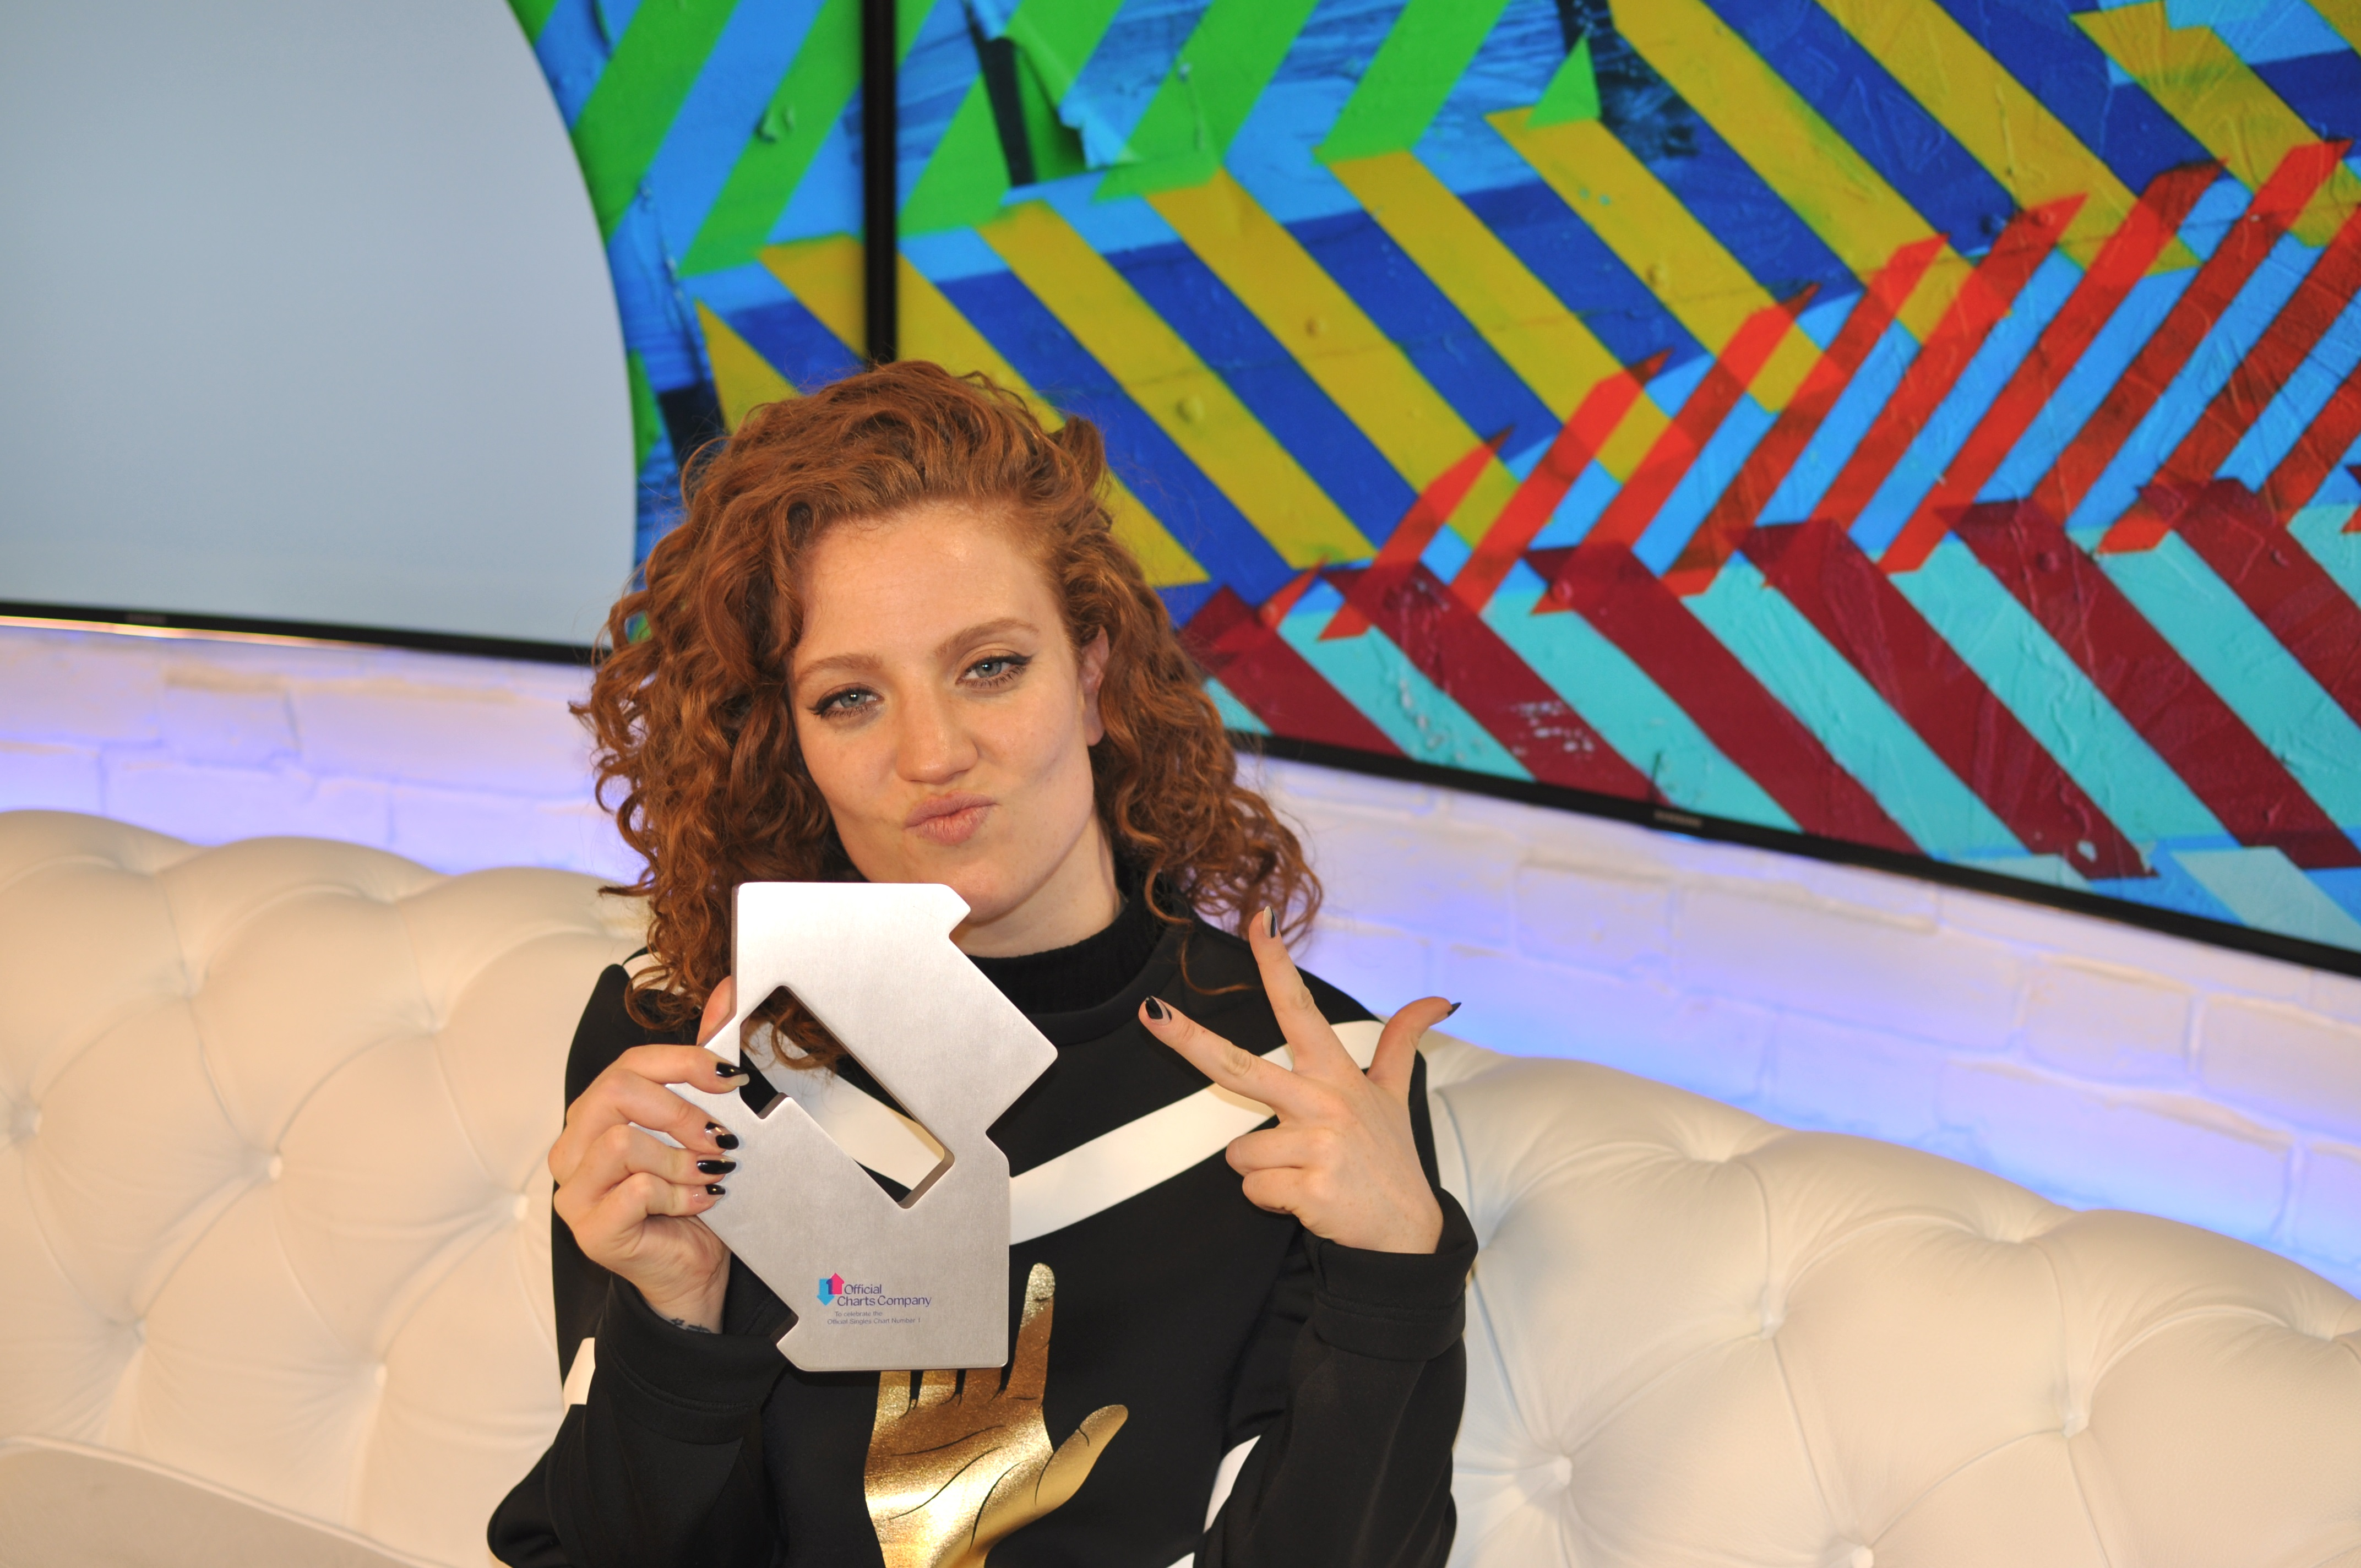 Jess Glynne has broken a charts record (Official Charts)